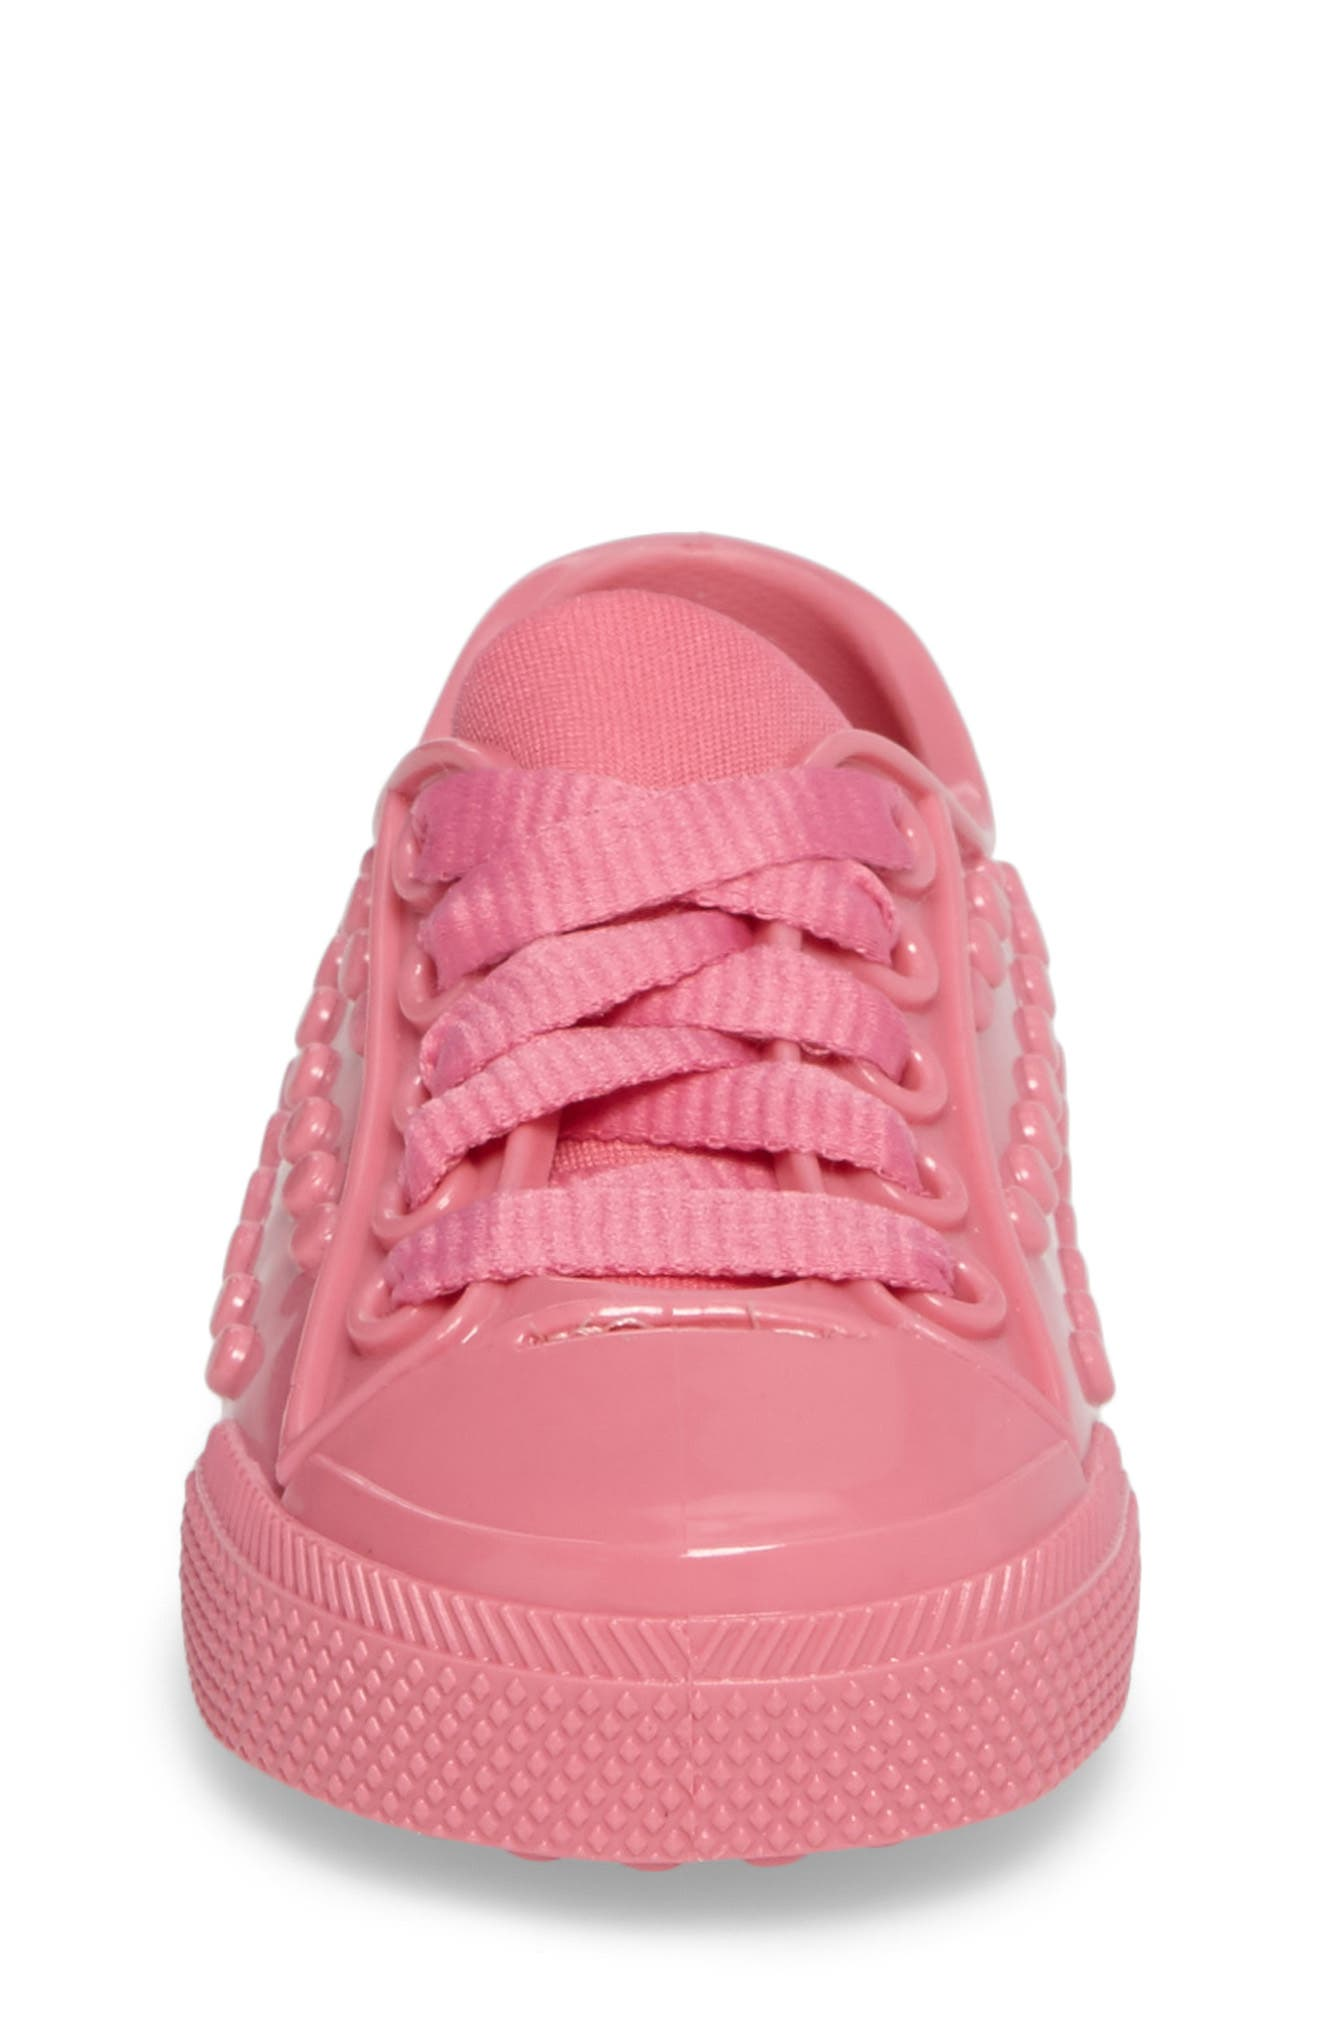 Polibolha III Sneaker,                             Alternate thumbnail 4, color,                             Pink Candy